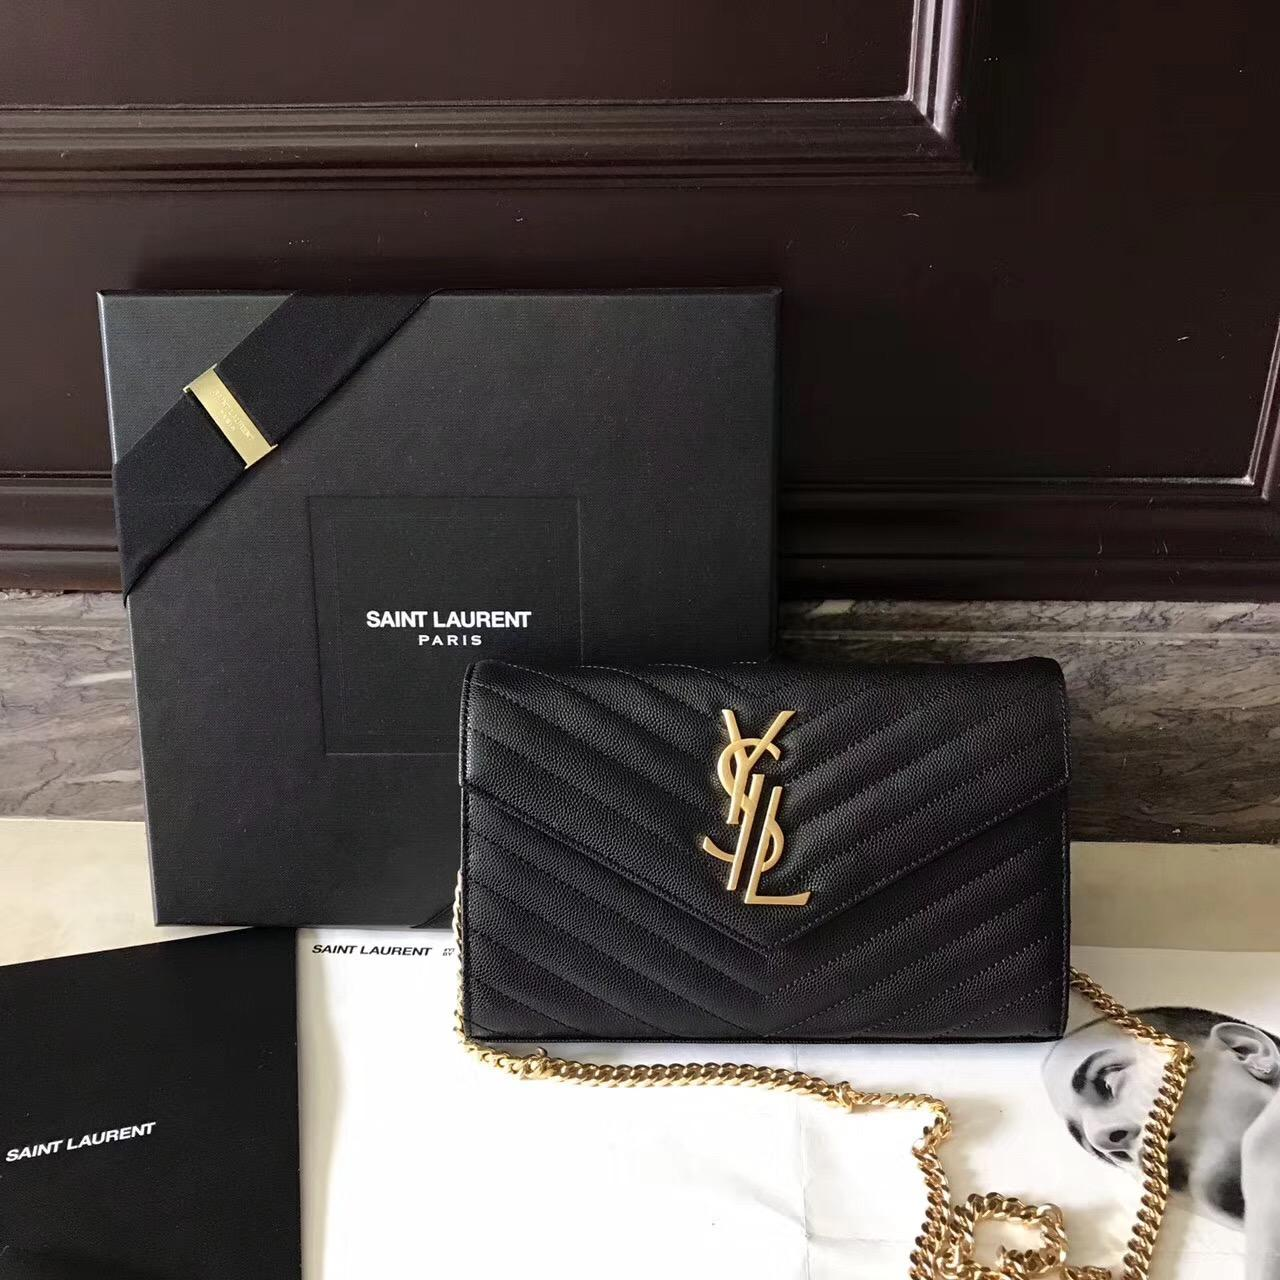 聖羅蘭 Saint Laurent ysl最新woc 22.5cm logo分開链条小包